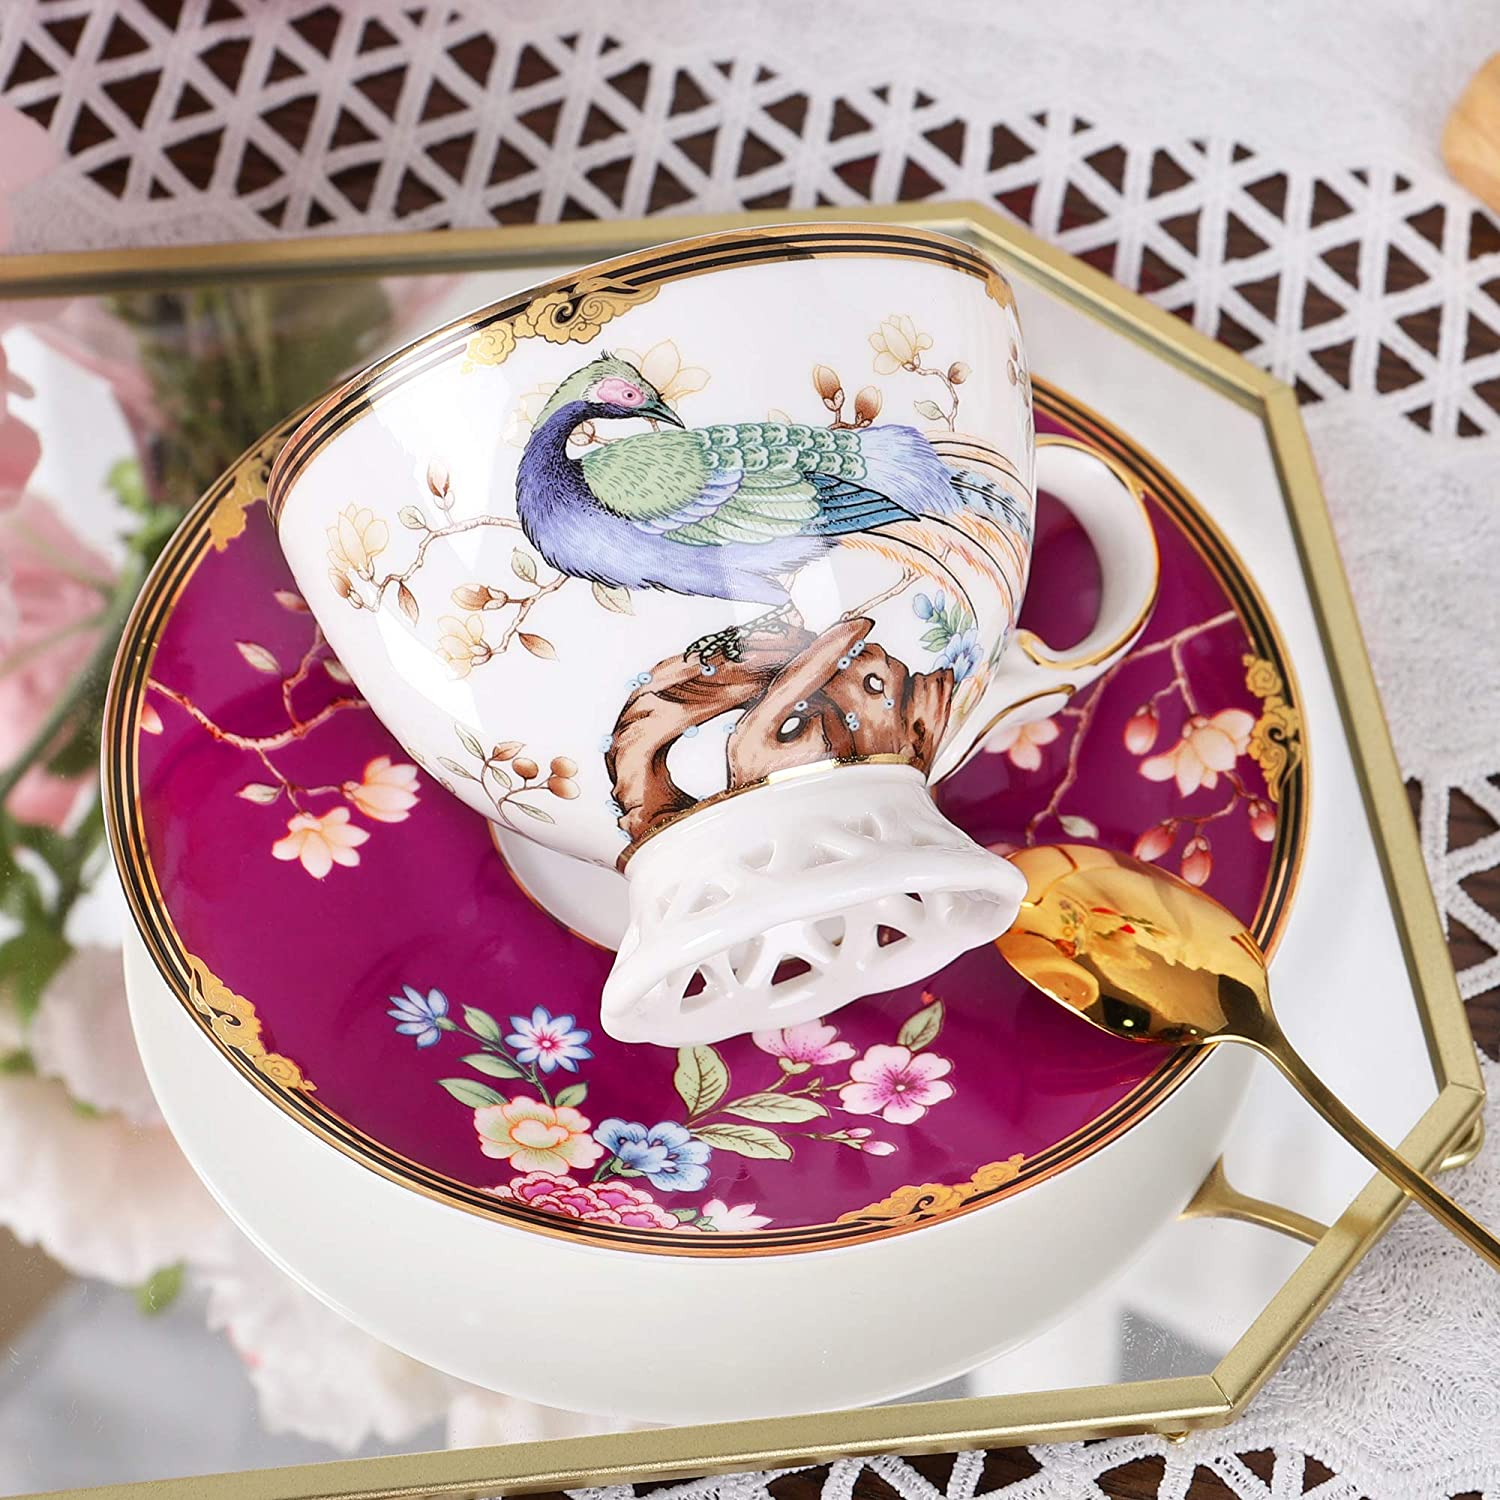 fanquare 7oz Purple Bird Fine Bone China Coffee Cup,Peacock Porcelain Tea Cup and Saucer Set,Cappuccino Cup